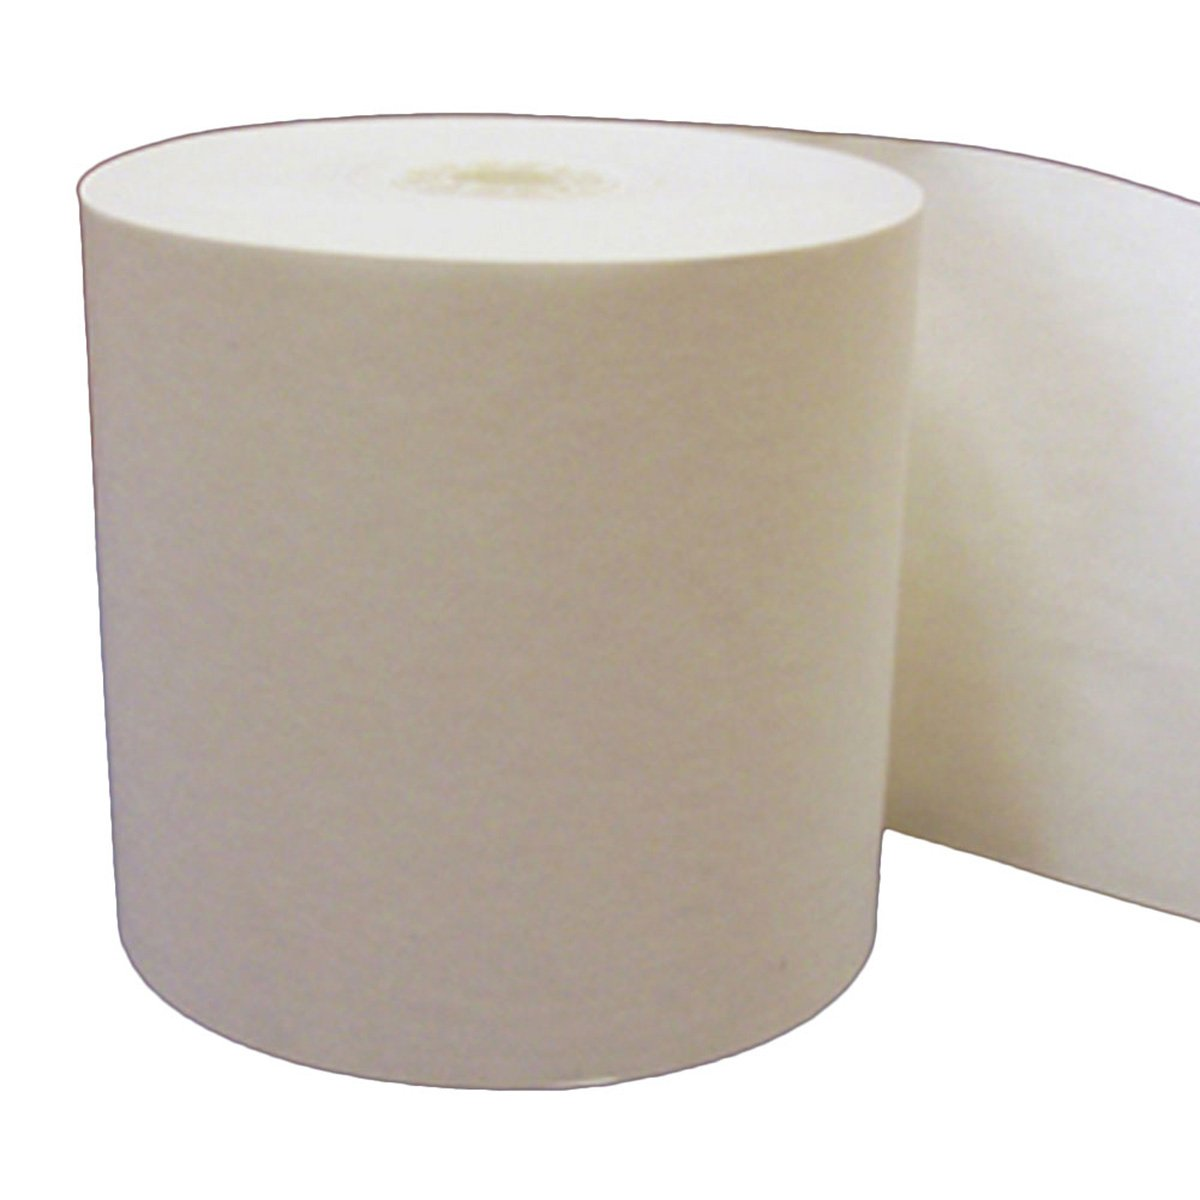 PDC Healthcare CTP-OMNI-300 Paper Omnicell, Direct Thermal, 1/2'' Core, 300' Per Roll, White (Pack of 1)